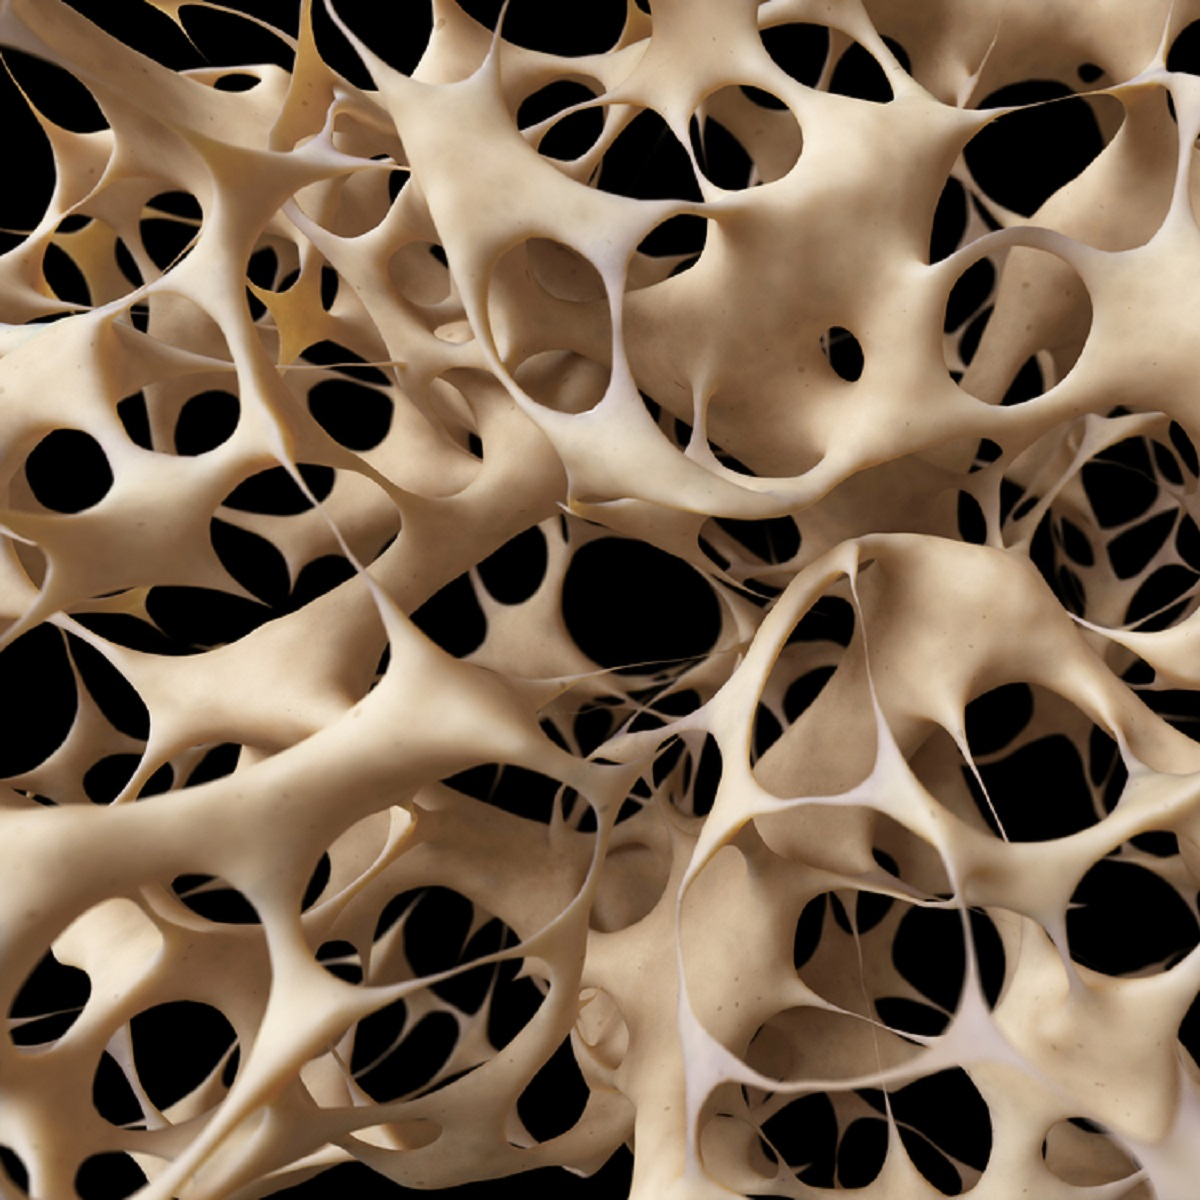 OSTEOPOROSIS – Symptoms, Causes, Risk Groups, Prevention and Treatment